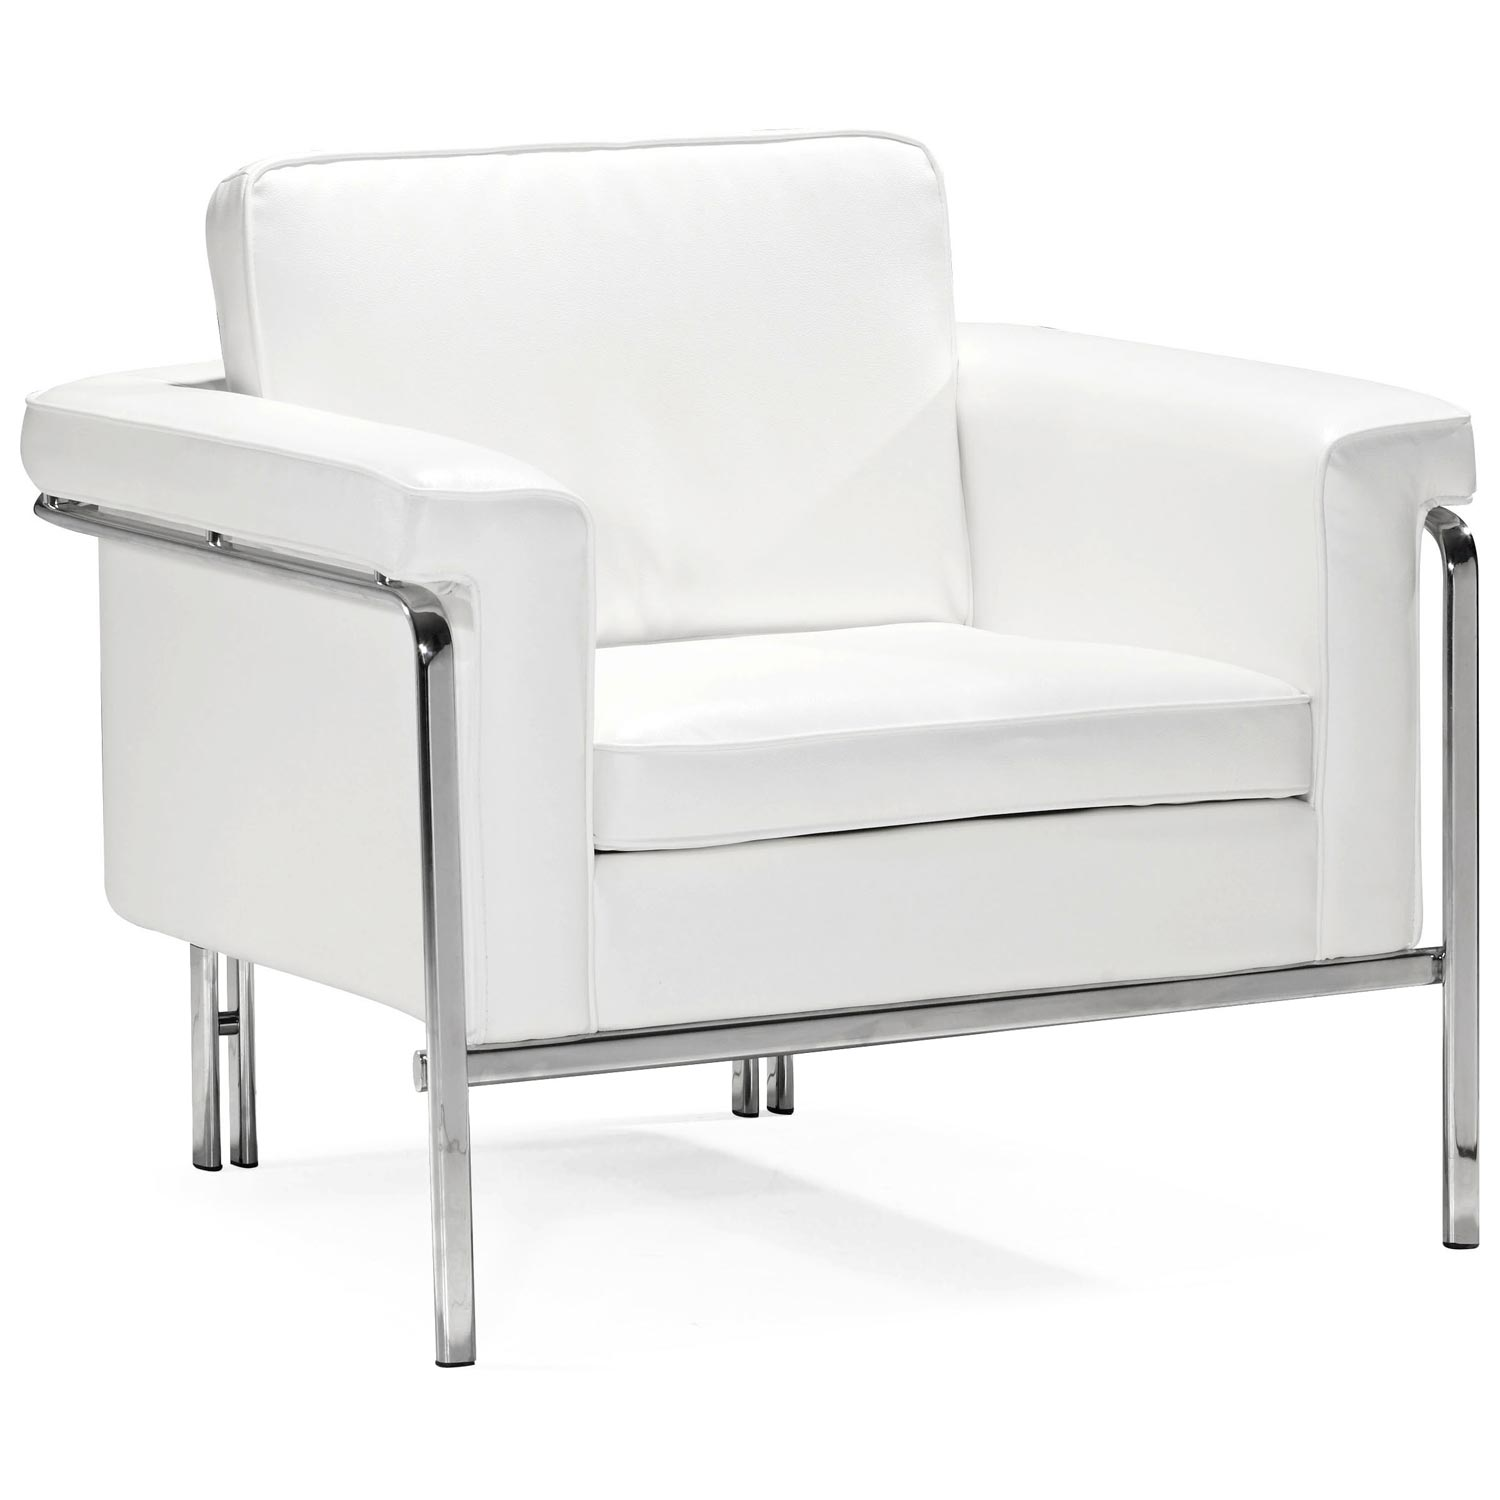 Singular Modern Armchair - Chrome Steel, White